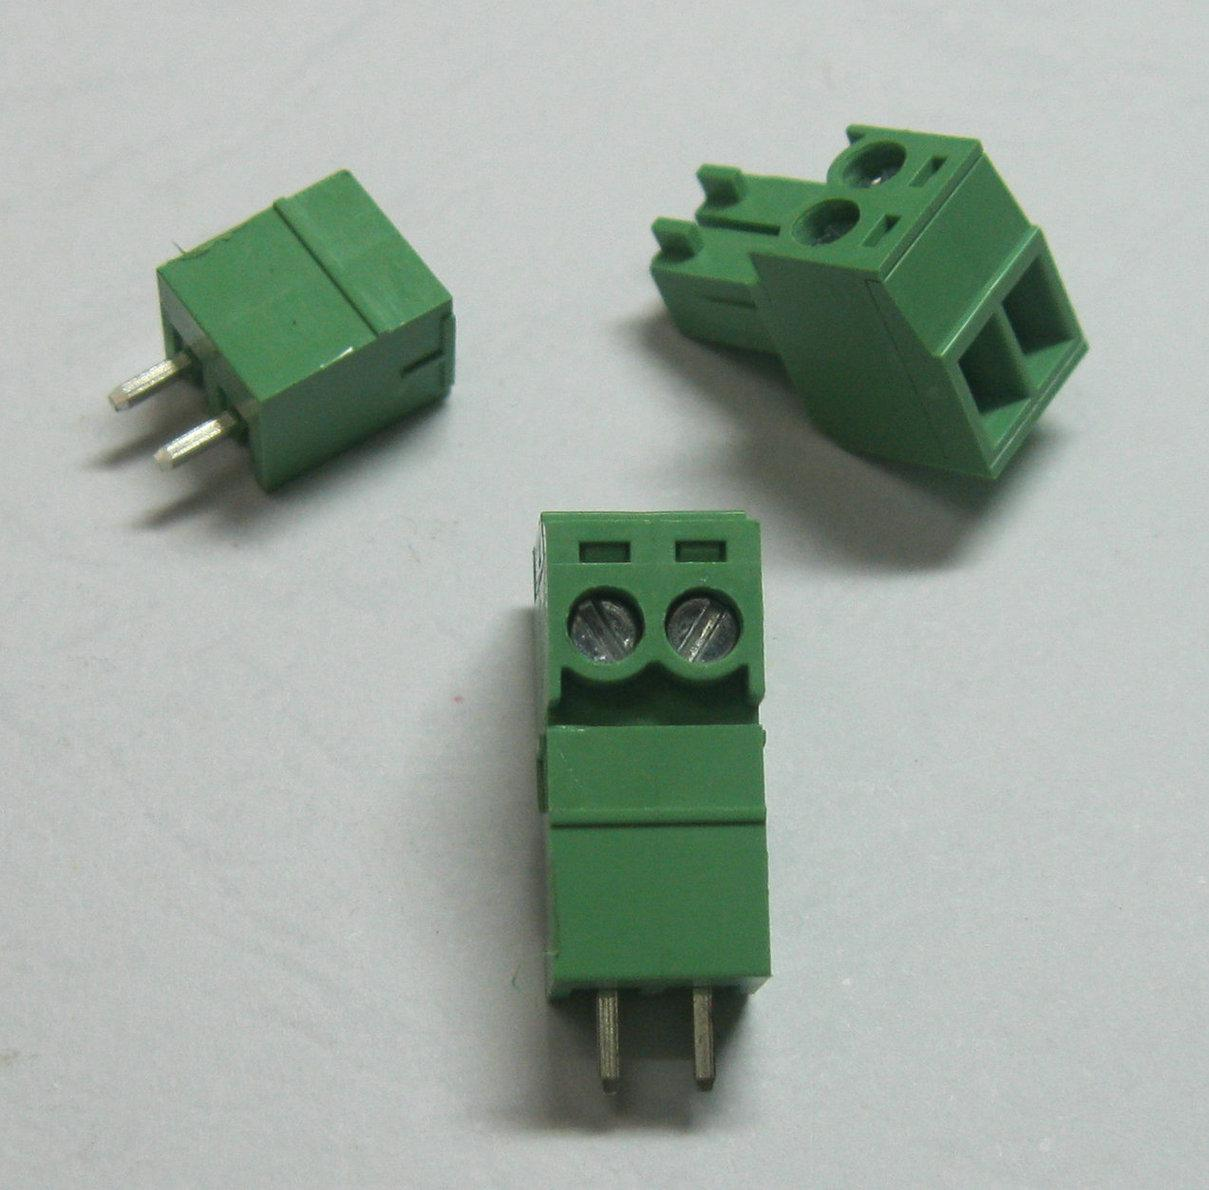 Green 2pin 3.5mm Screw Terminal Block Connector Pluggable Type High Quality HOT Sale